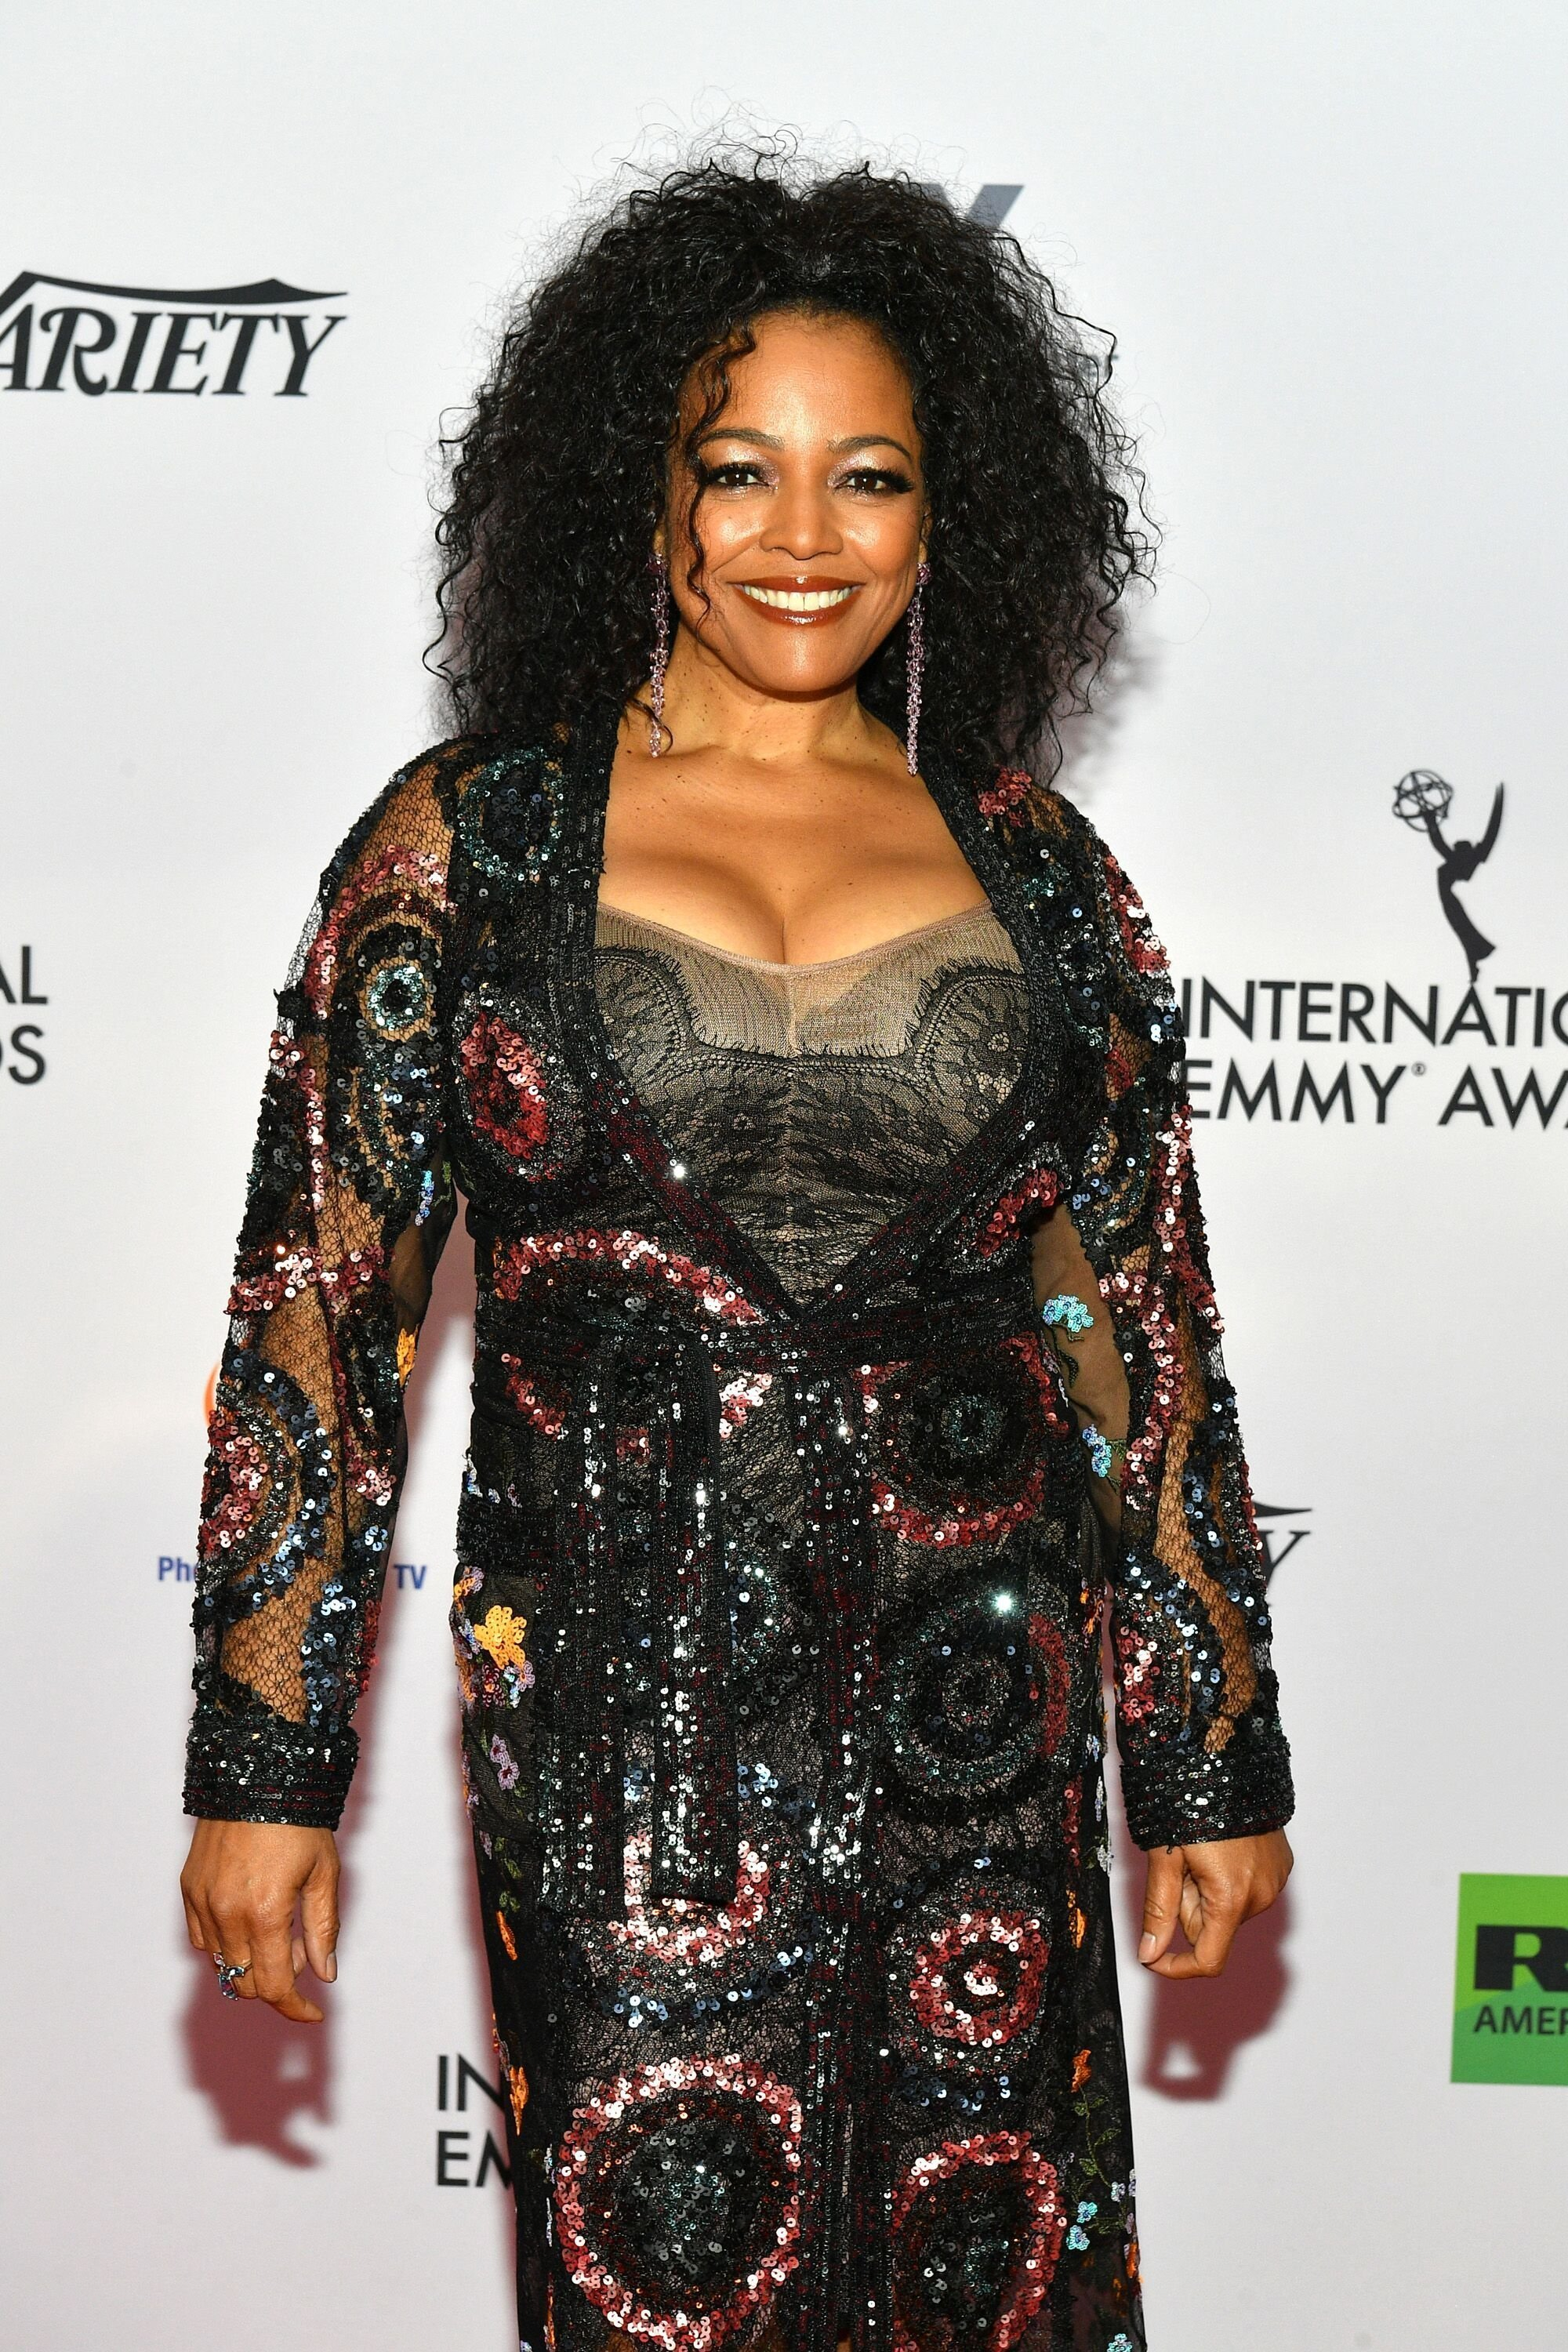 Kim Fields attends the 2019 International Emmy Awards Gala on November 25, 2019. | Photo: Getty Images